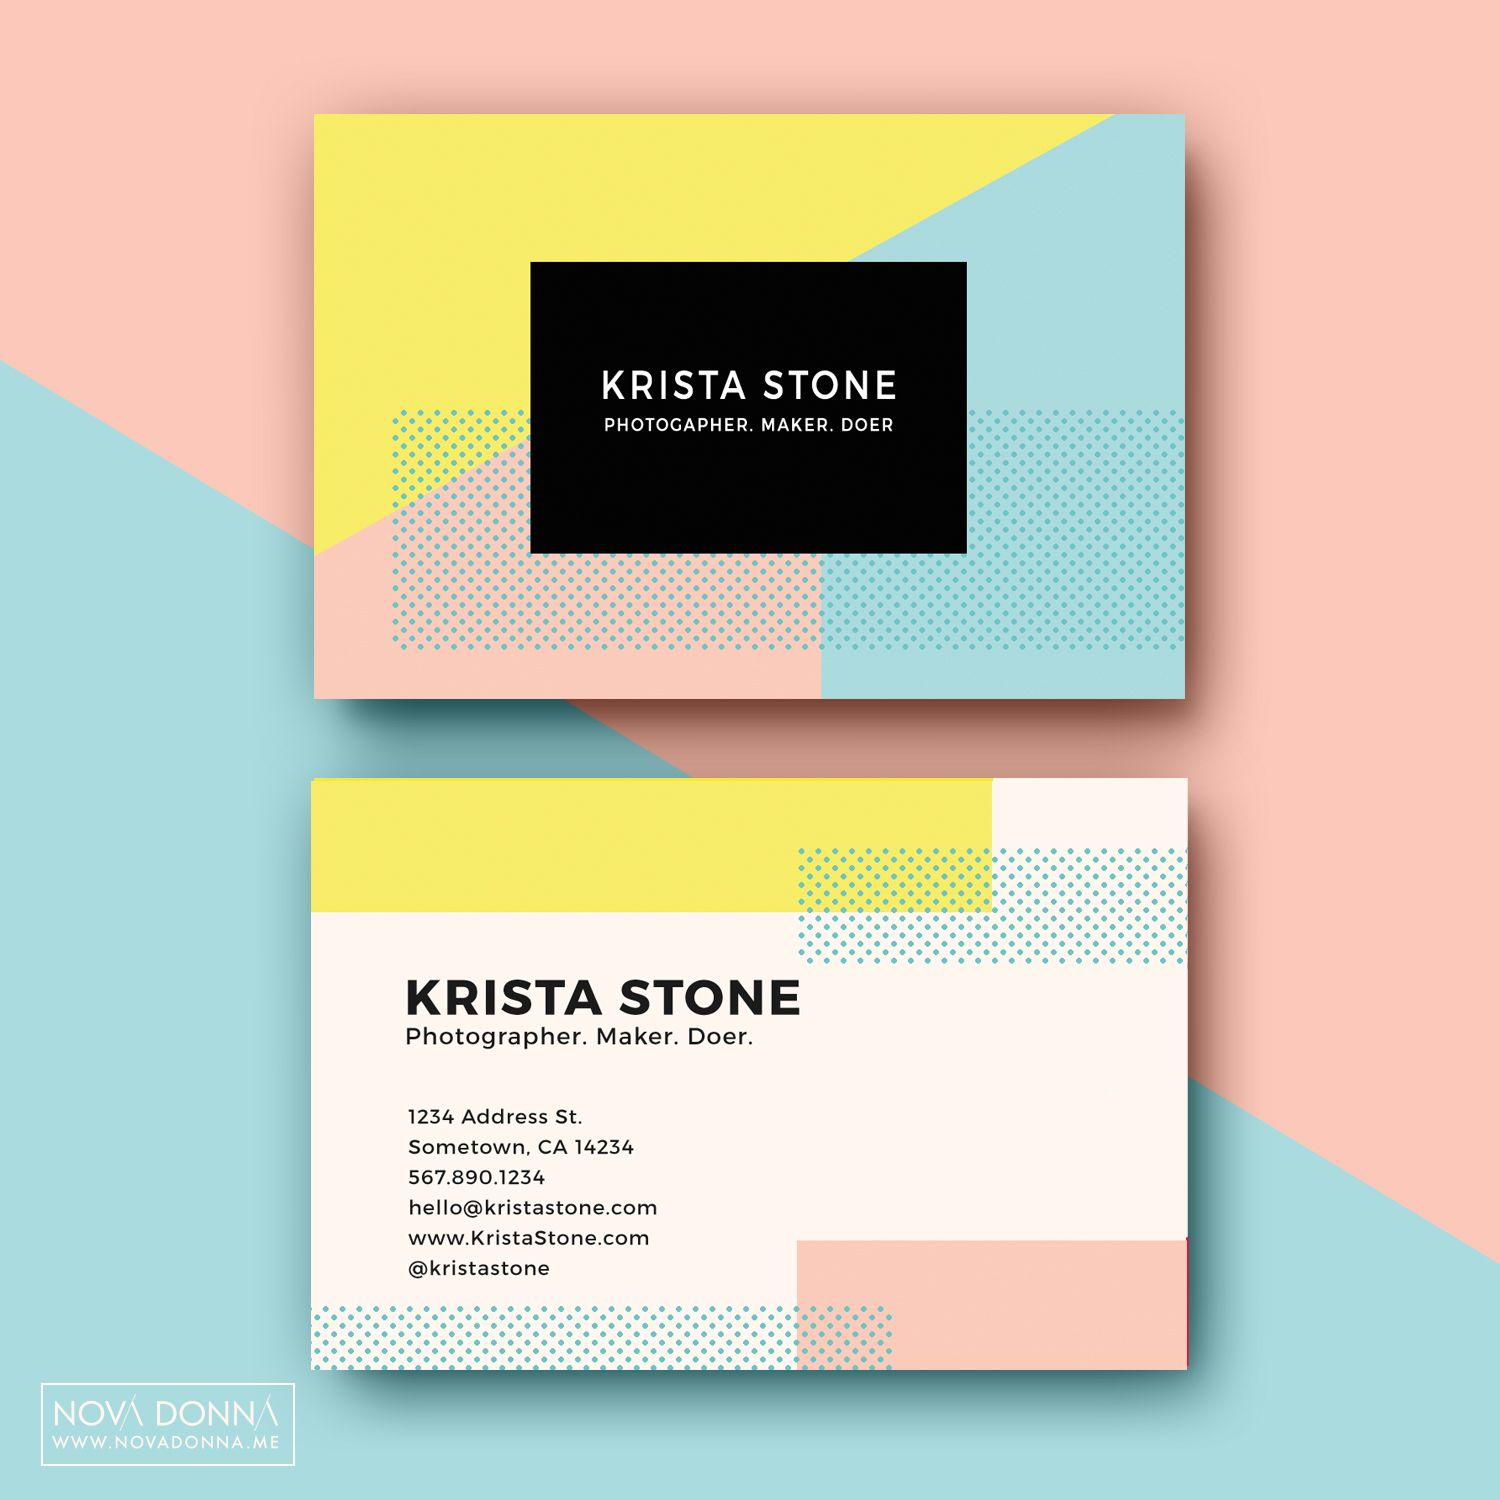 Business Card Template Designs | Card templates, Pastel colors and ...